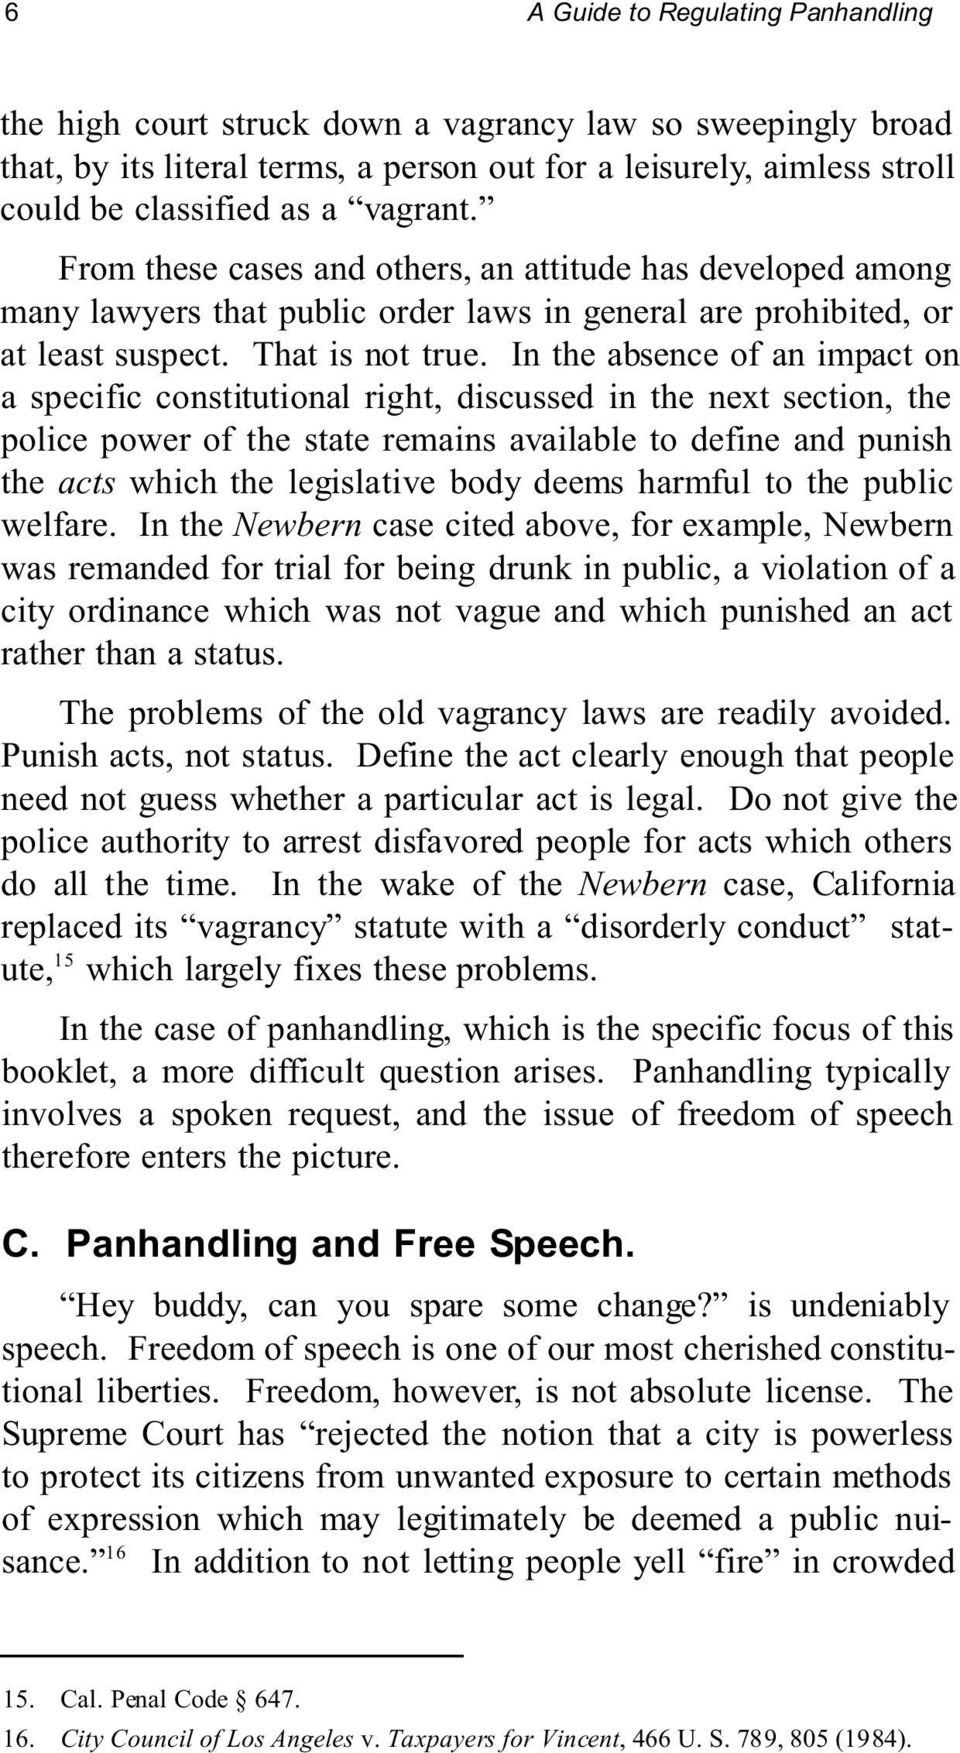 In the absence of an impact on a specific constitutional right, discussed in the next section, the police power of the state remains available to define and punish the acts which the legislative body